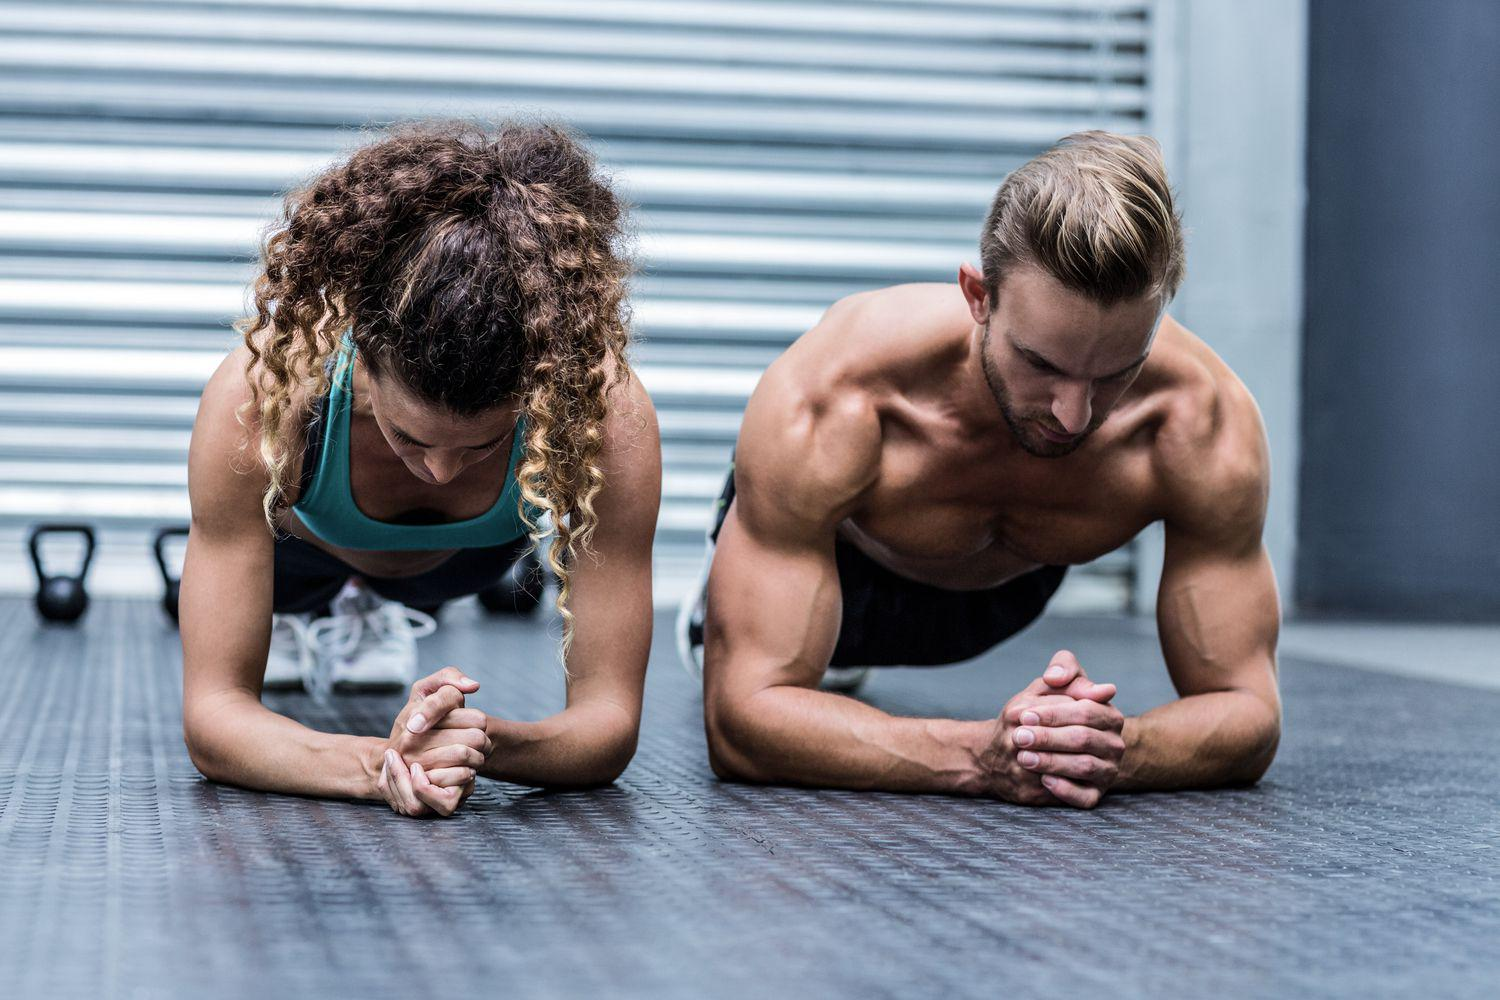 Just two people working out alone, together.